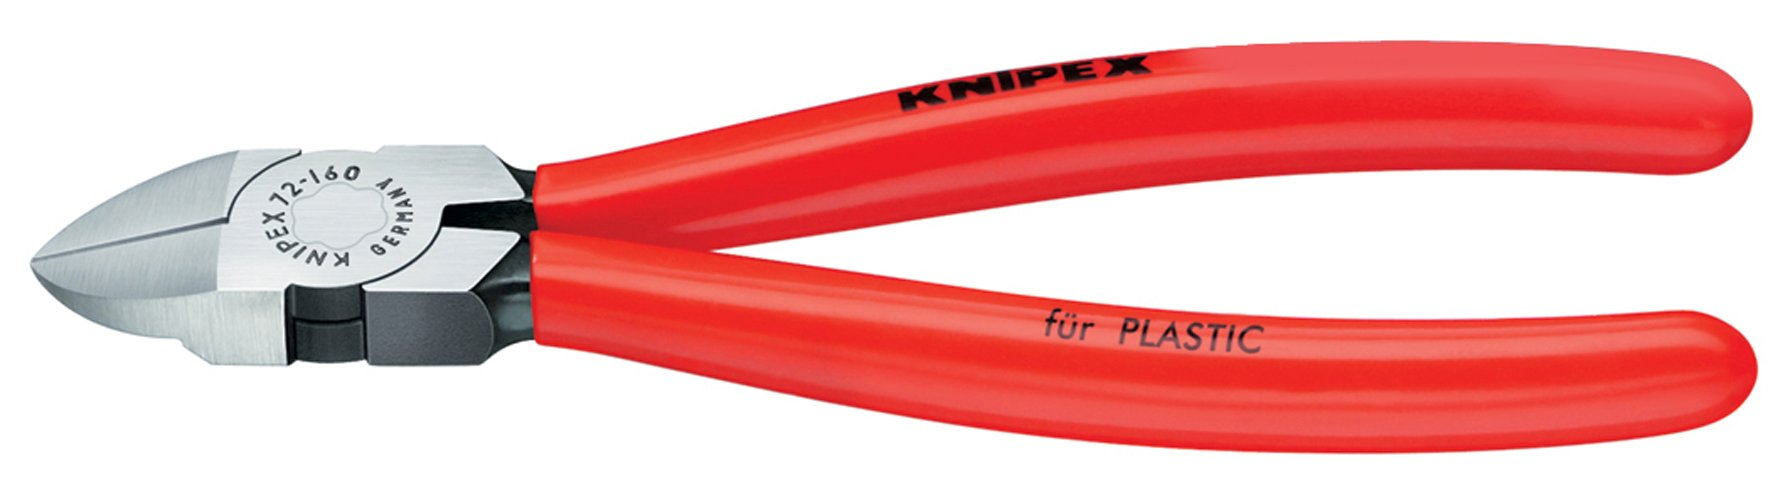 KNIPEX 72 01 180 Diagonal Flush Cutters by KNIPEX Tools